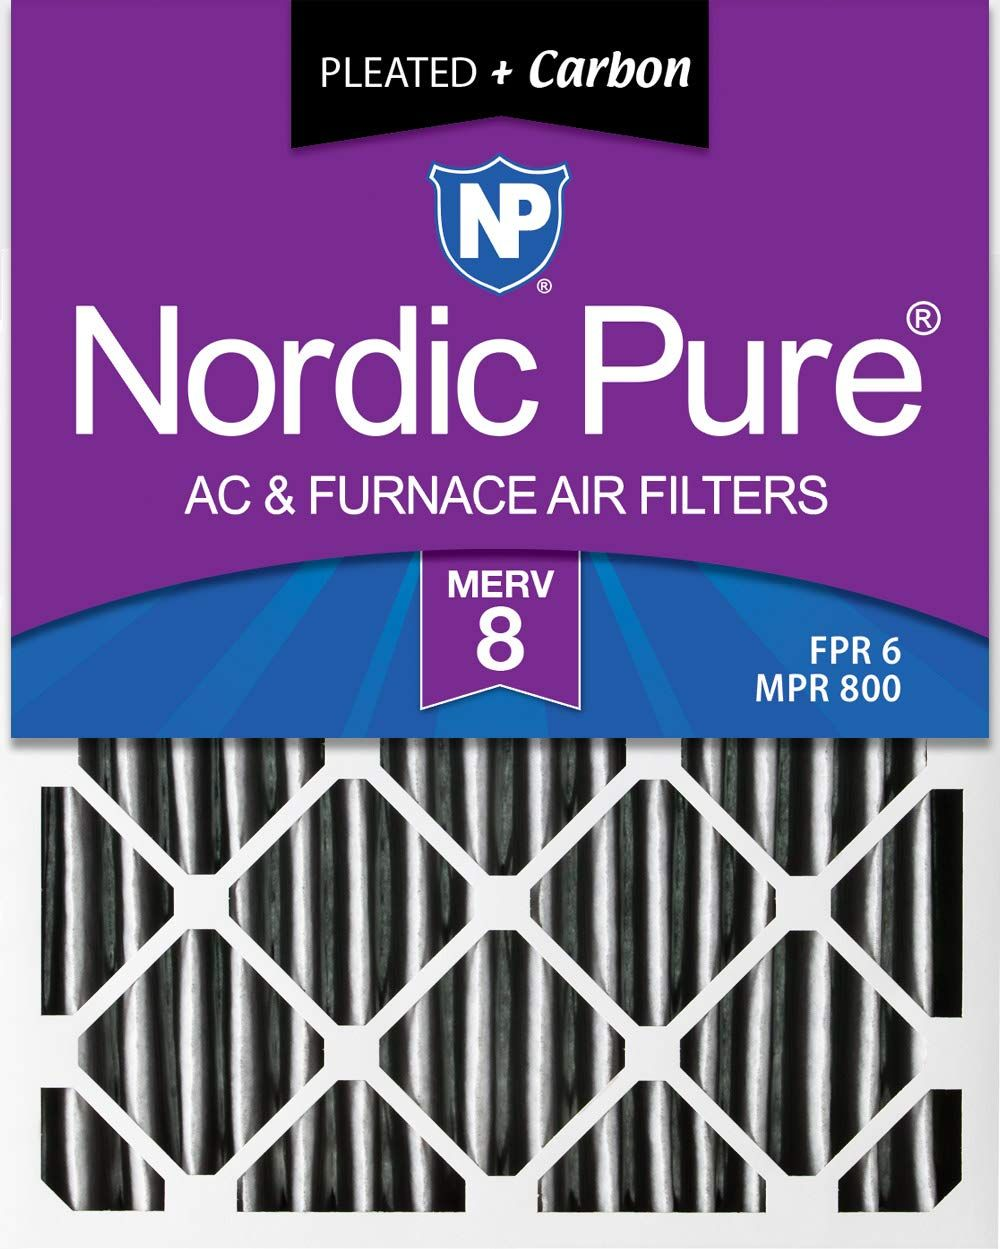 Nordic Pure 16x25x1 MERV 8 Pleated Plus Carbon AC Furnace